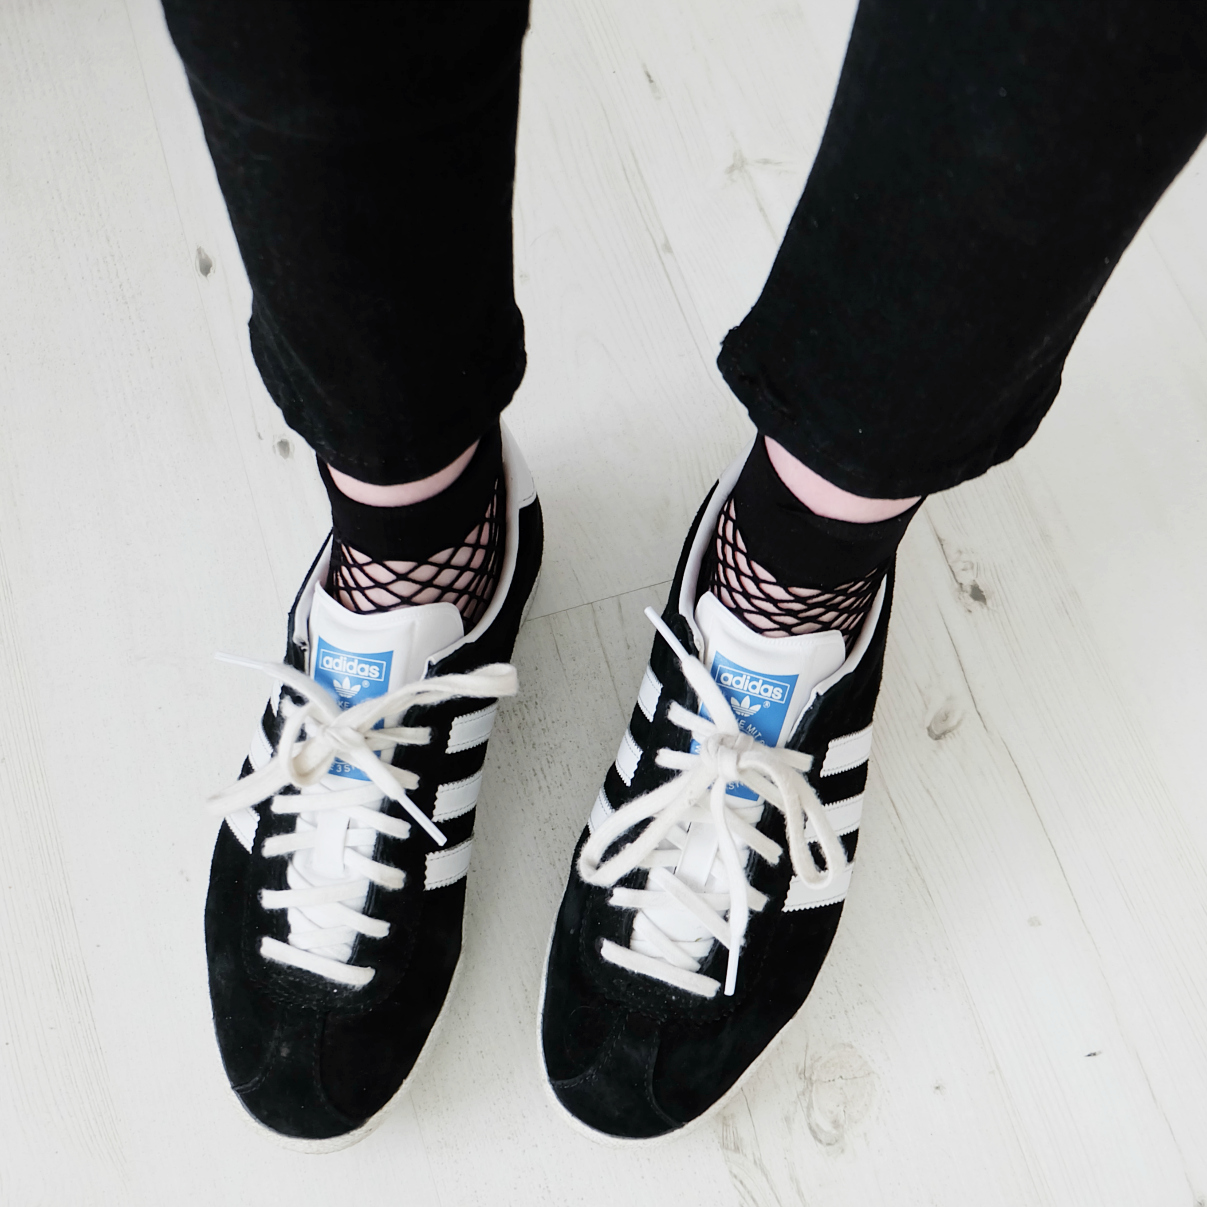 adidas gazelles, fishnet socks